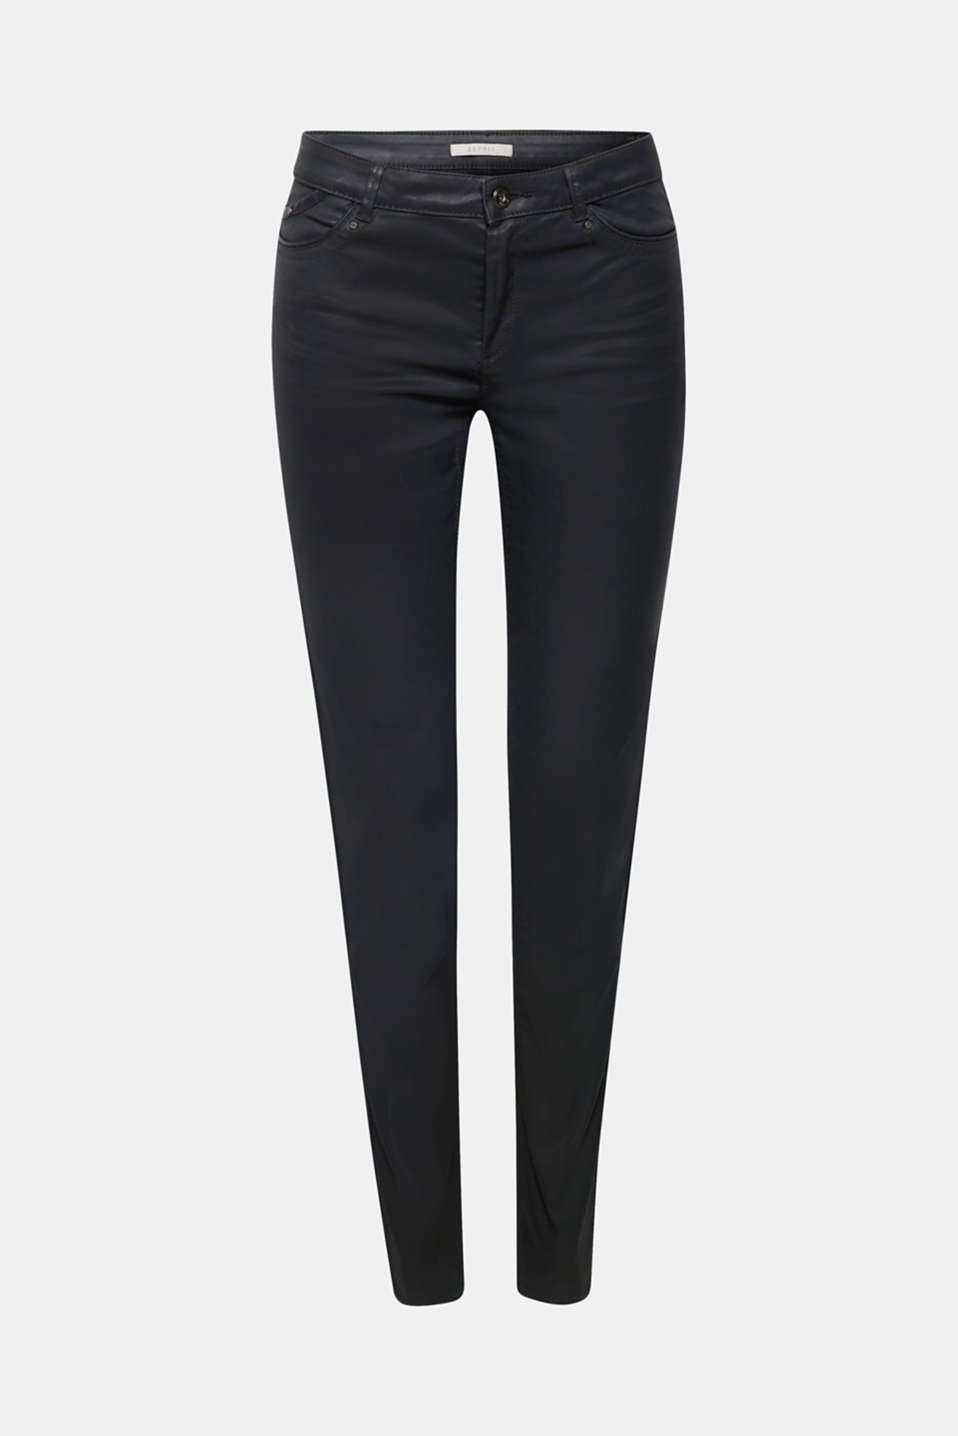 Cool look: These stretchy trousers are incredibly hip thanks to the slim-fitting cut and smooth faux leather!